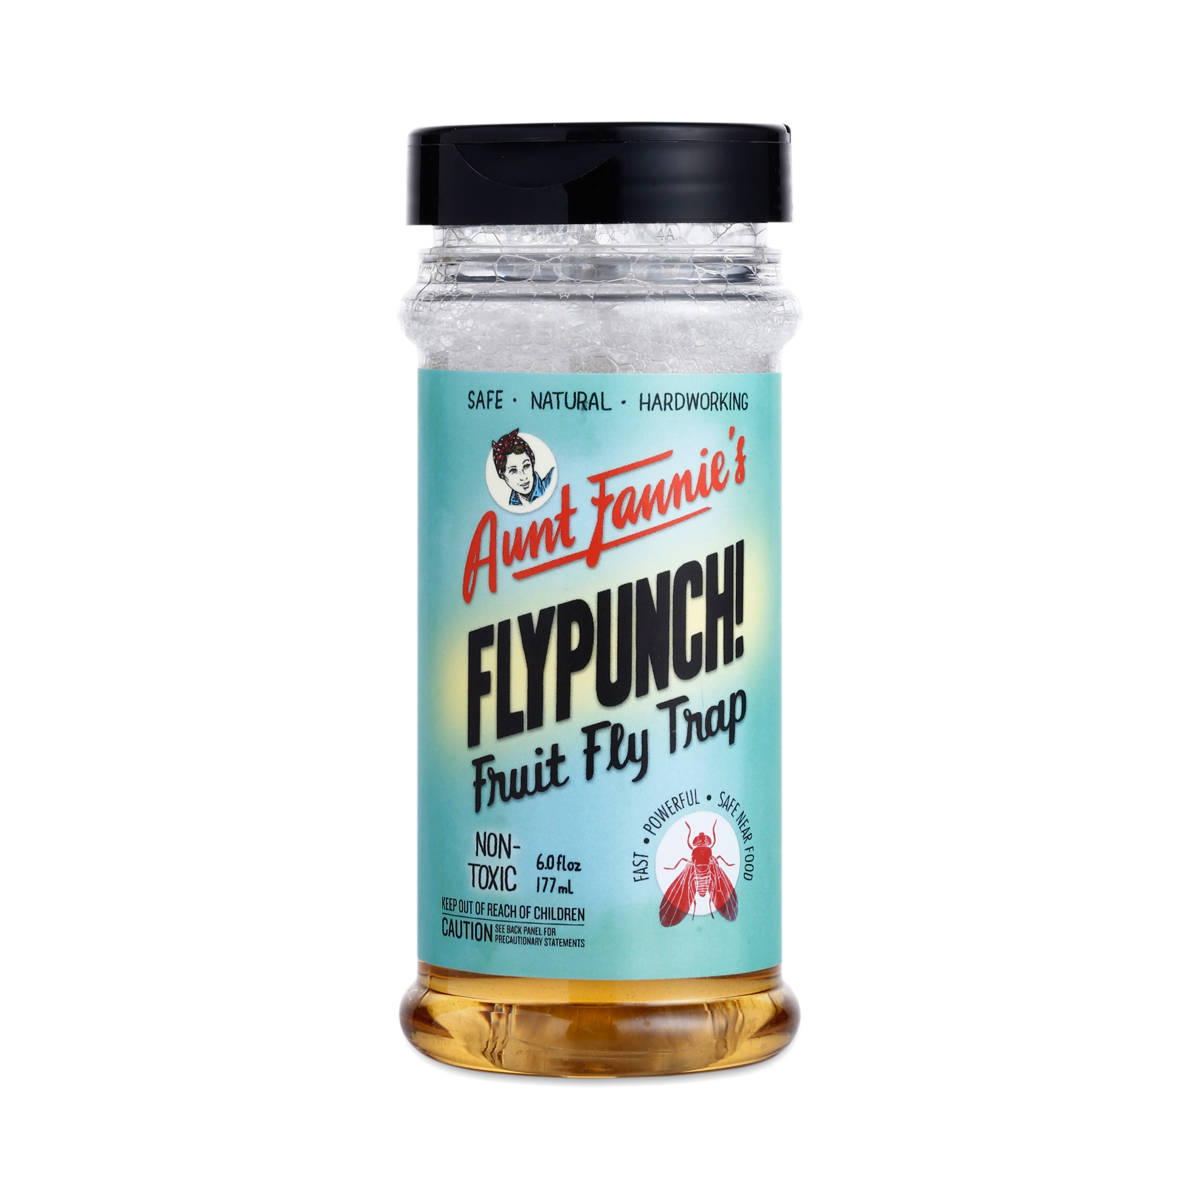 Flypunch: Fruit Fly Trap